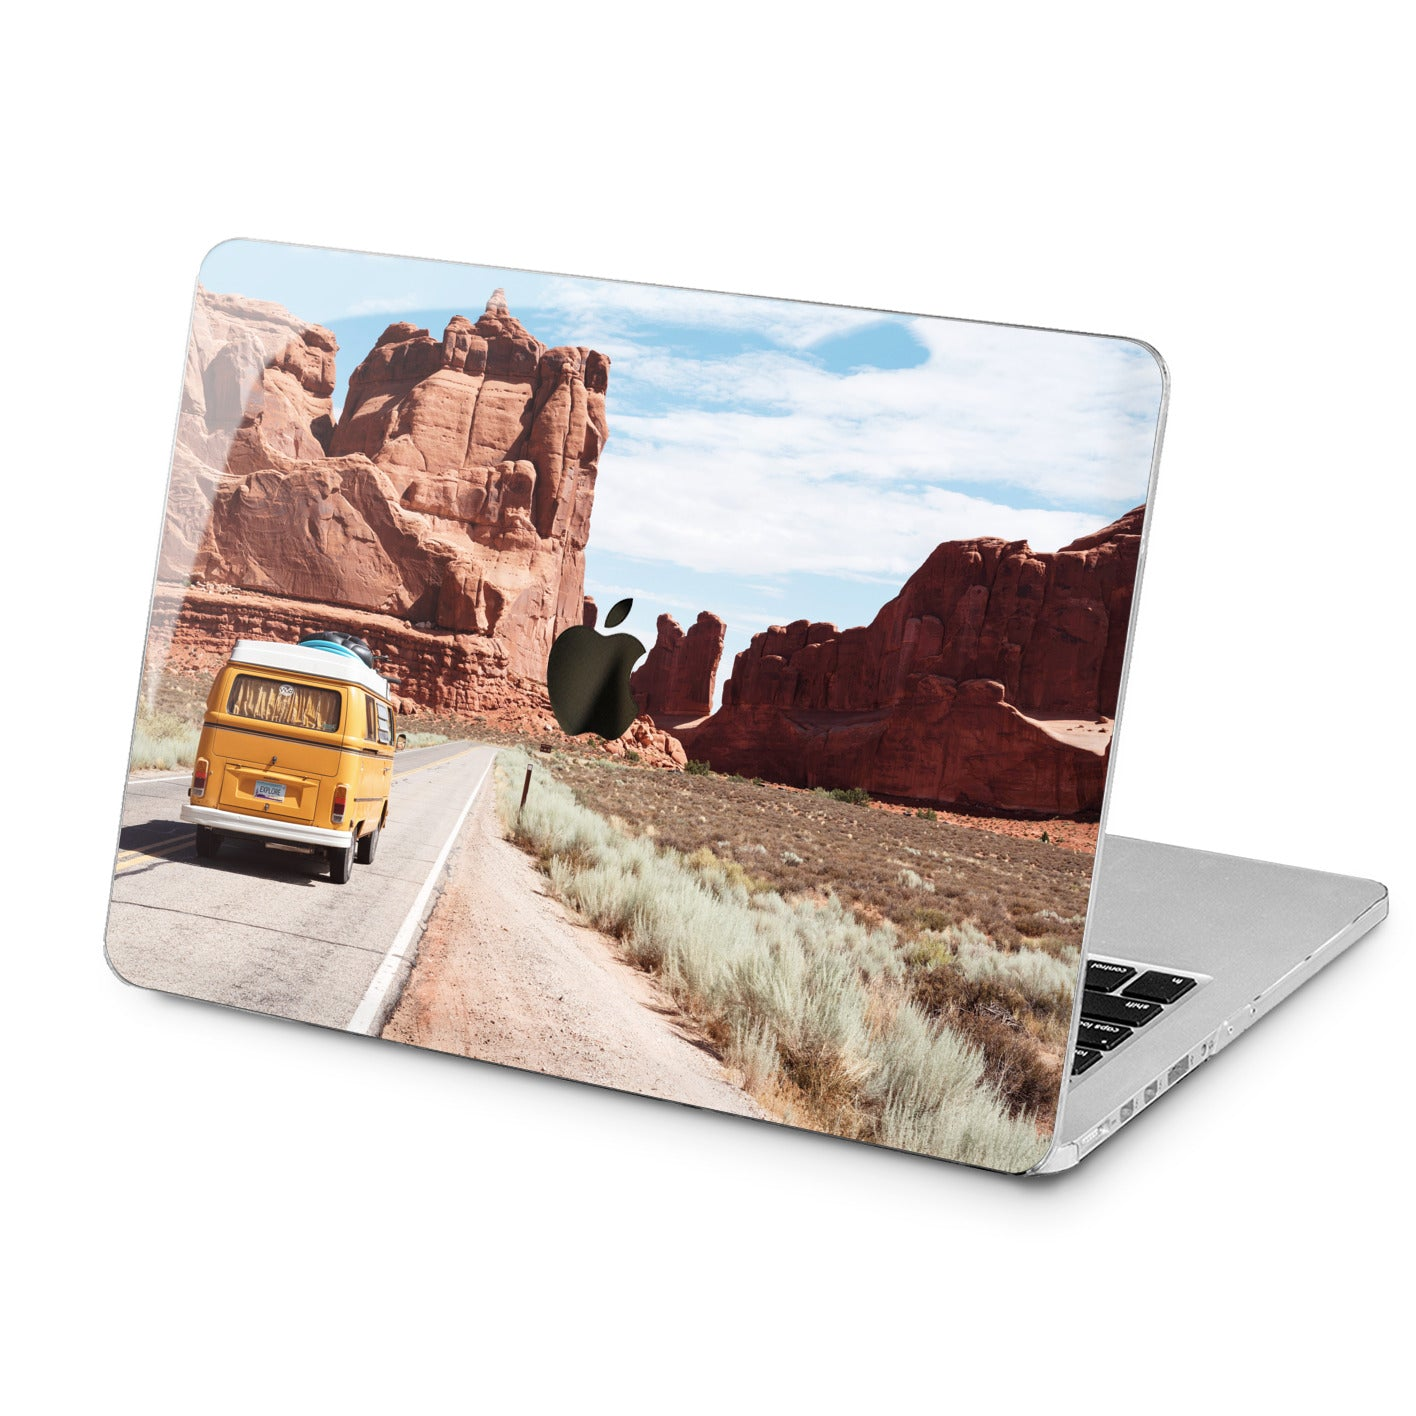 Lex Altern Lex Altern Grand Canyon Case for your Laptop Apple Macbook.